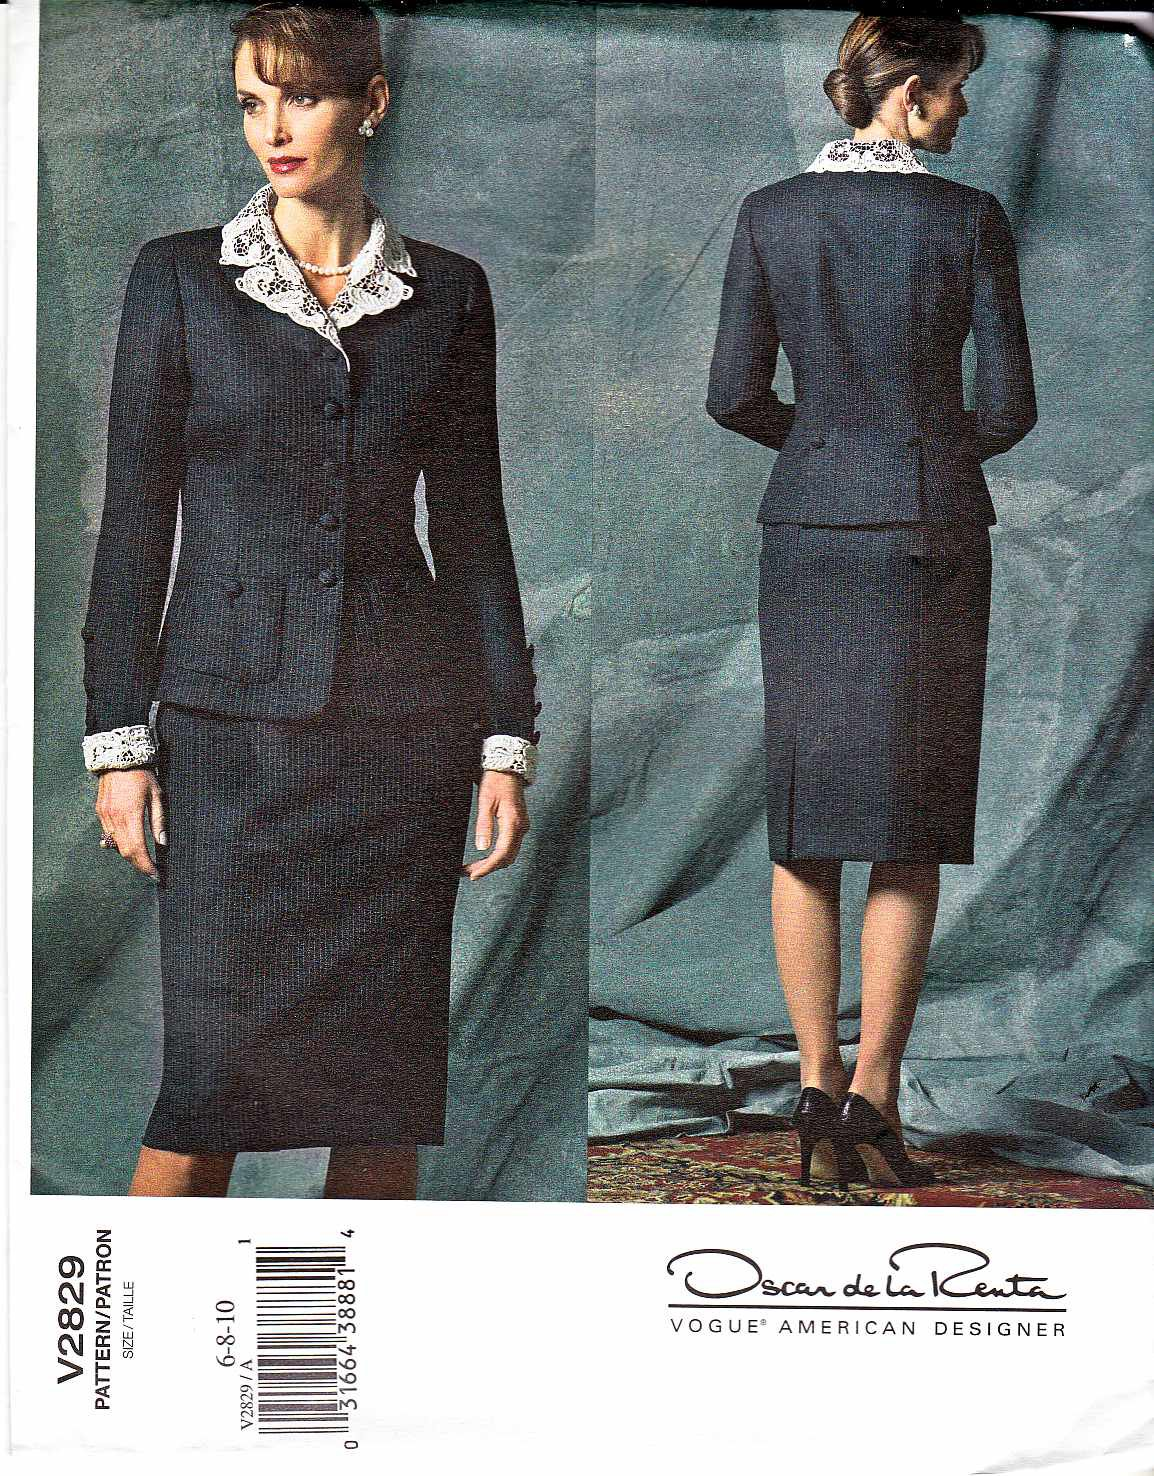 Vogue Sewing Pattern 2829 Misses Size 6-8-10 Oscar de la Renta Suit Skirt Jacket